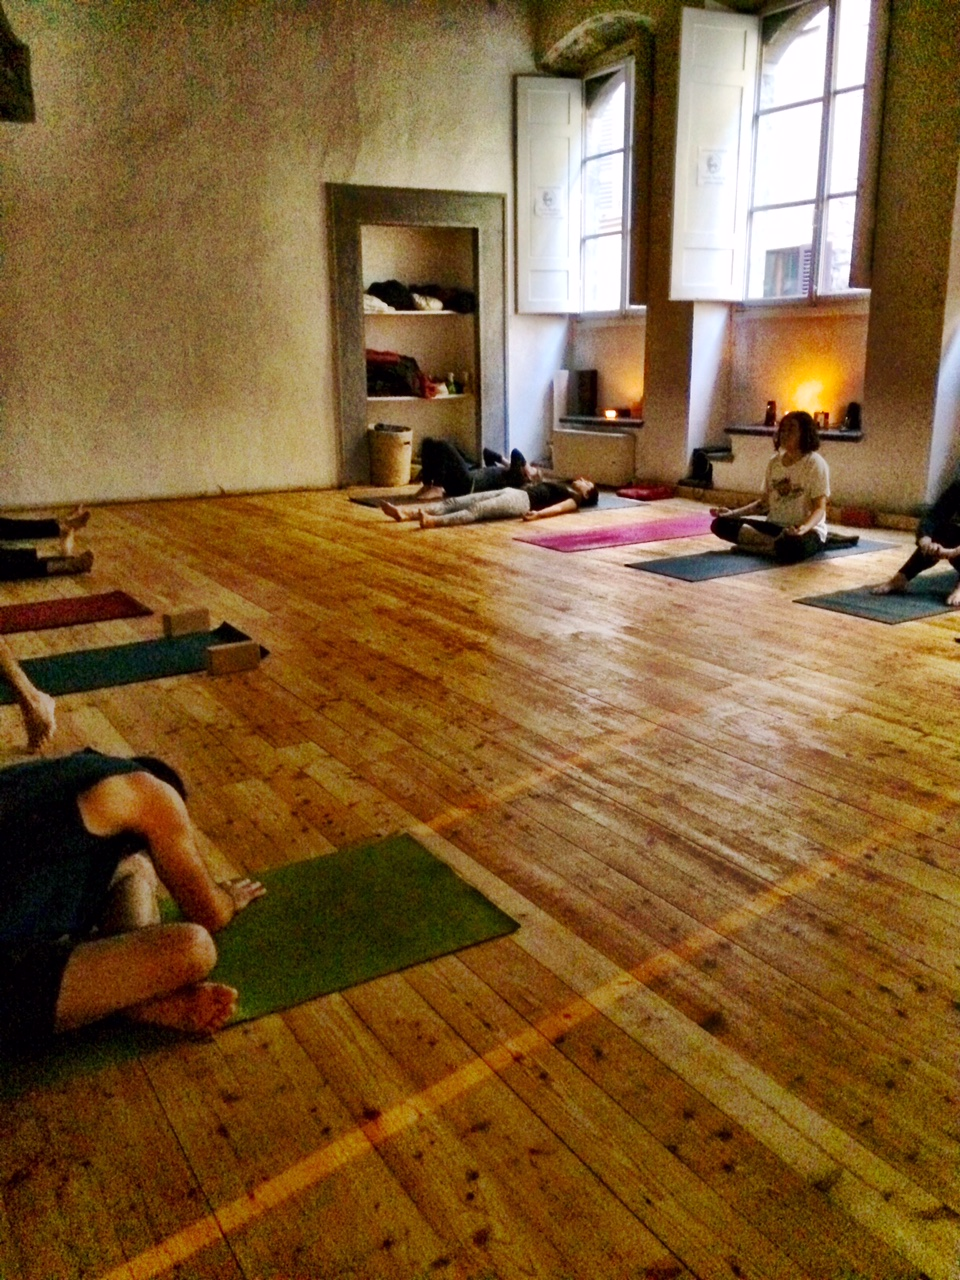 It's Yoga Firenze's studio